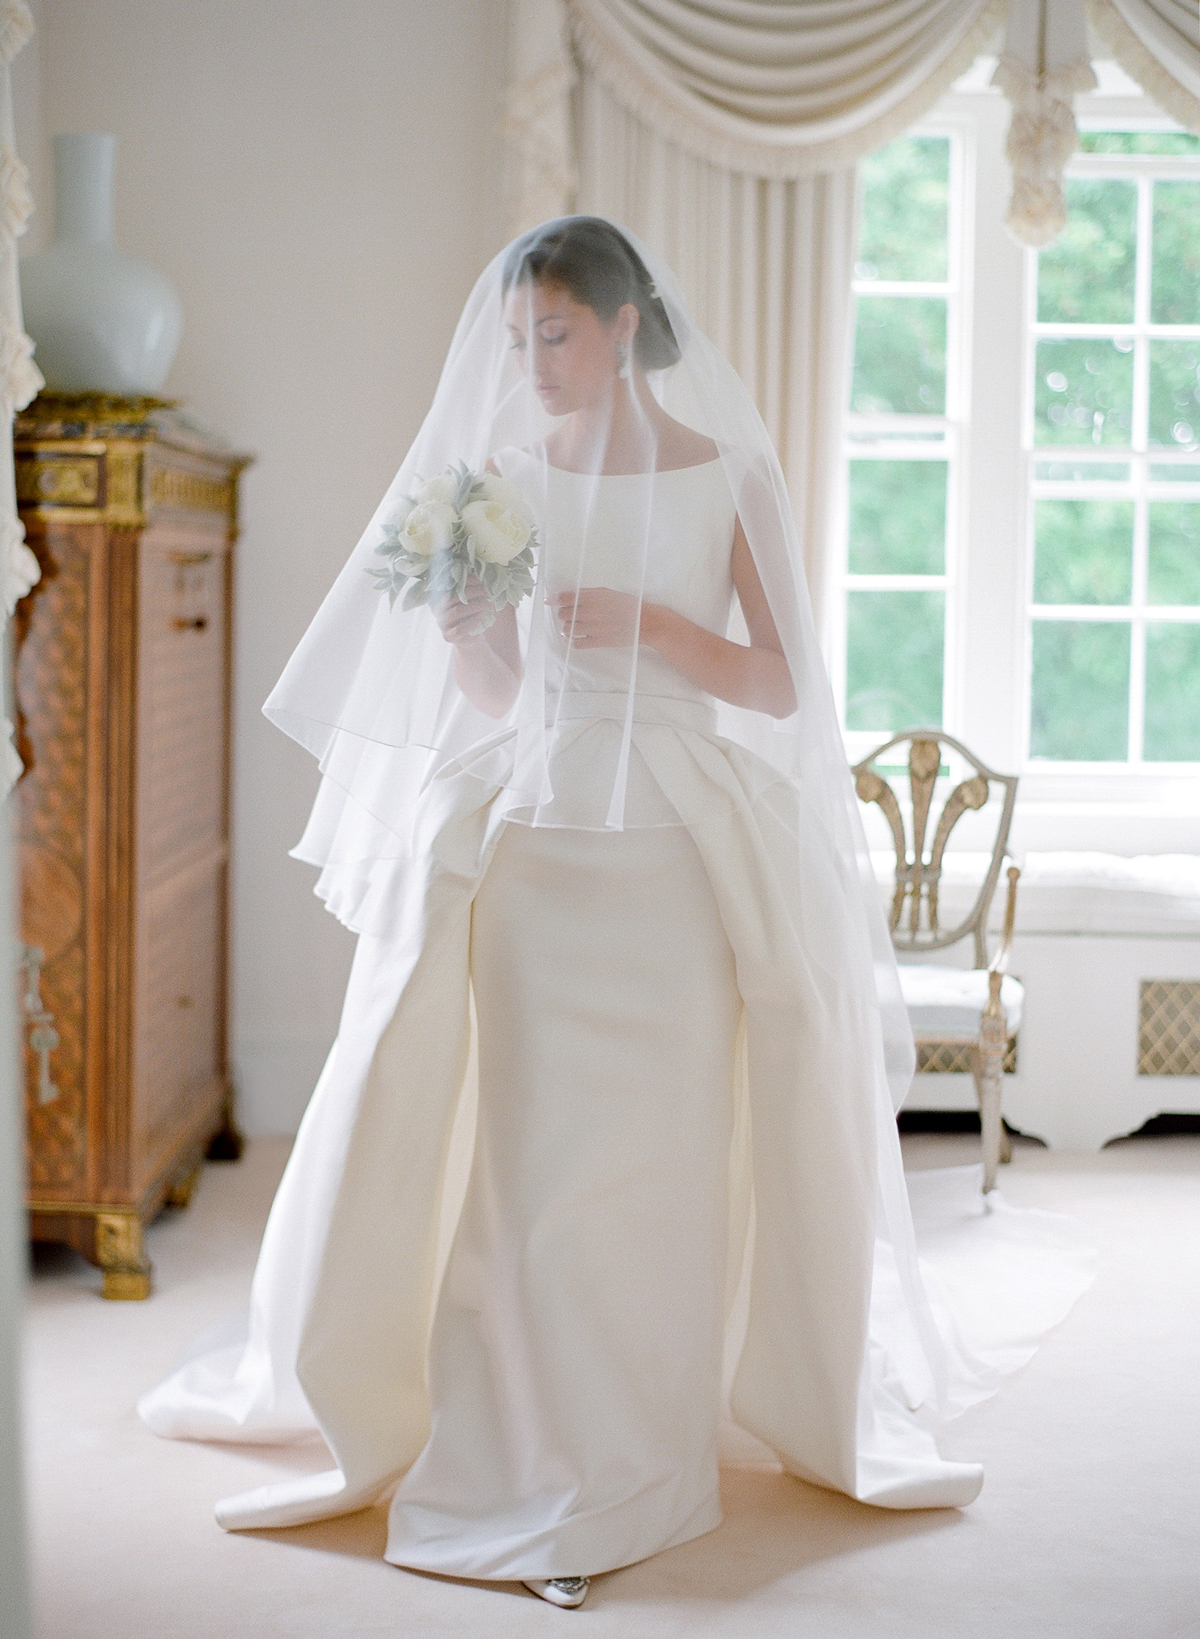 peony matthew england wedding bride in gown and veil